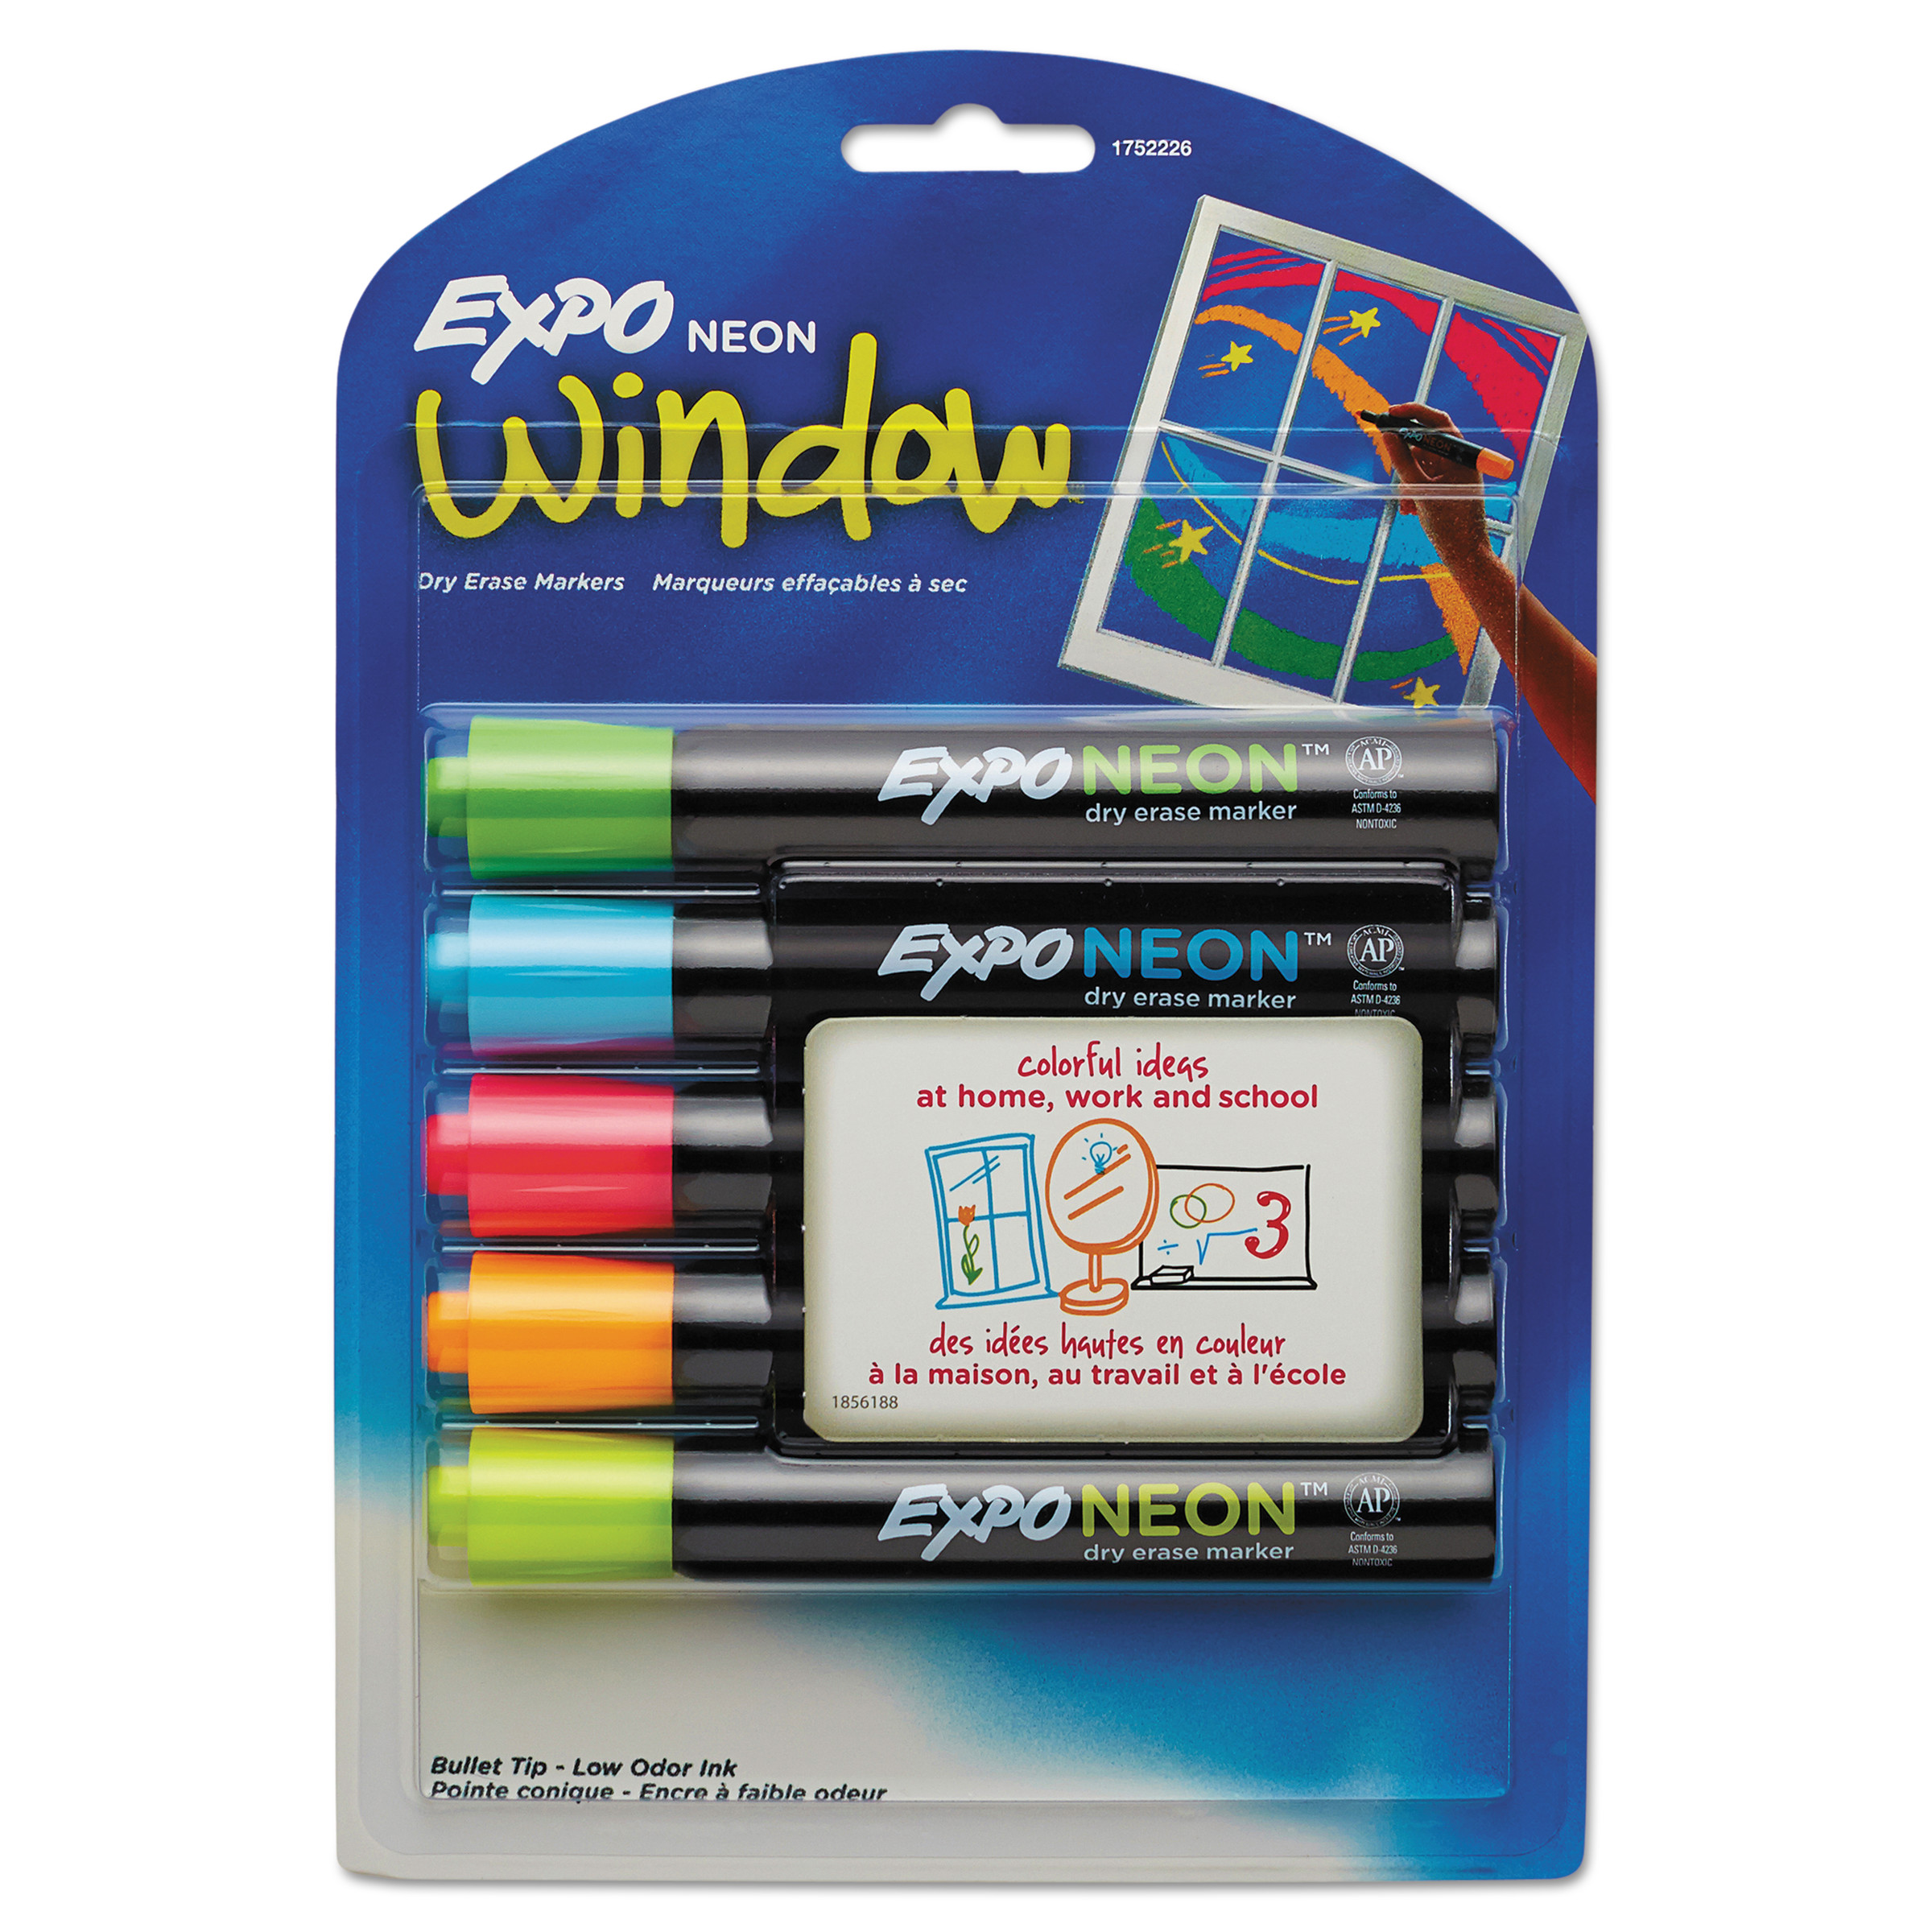 Expo Neon Dry Erase Marker, Bullet Tip, Assorted, 5pk